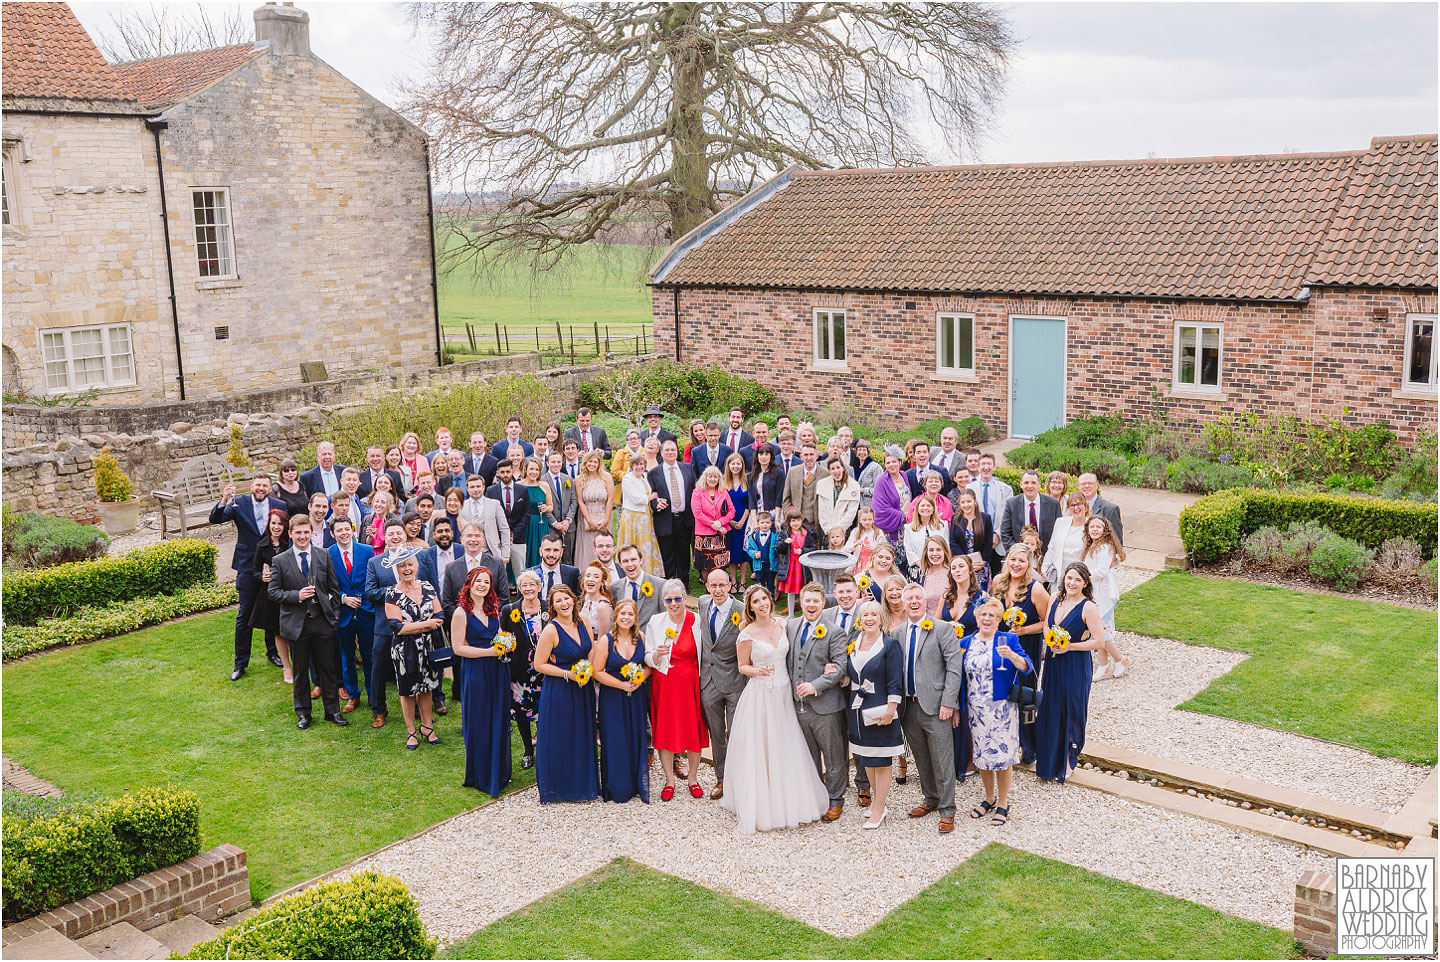 A photo of everyone at Priory Cottages in Yorkshire, Wedding photos at Priory Cottages, Wedding at The Priory Yorkshire